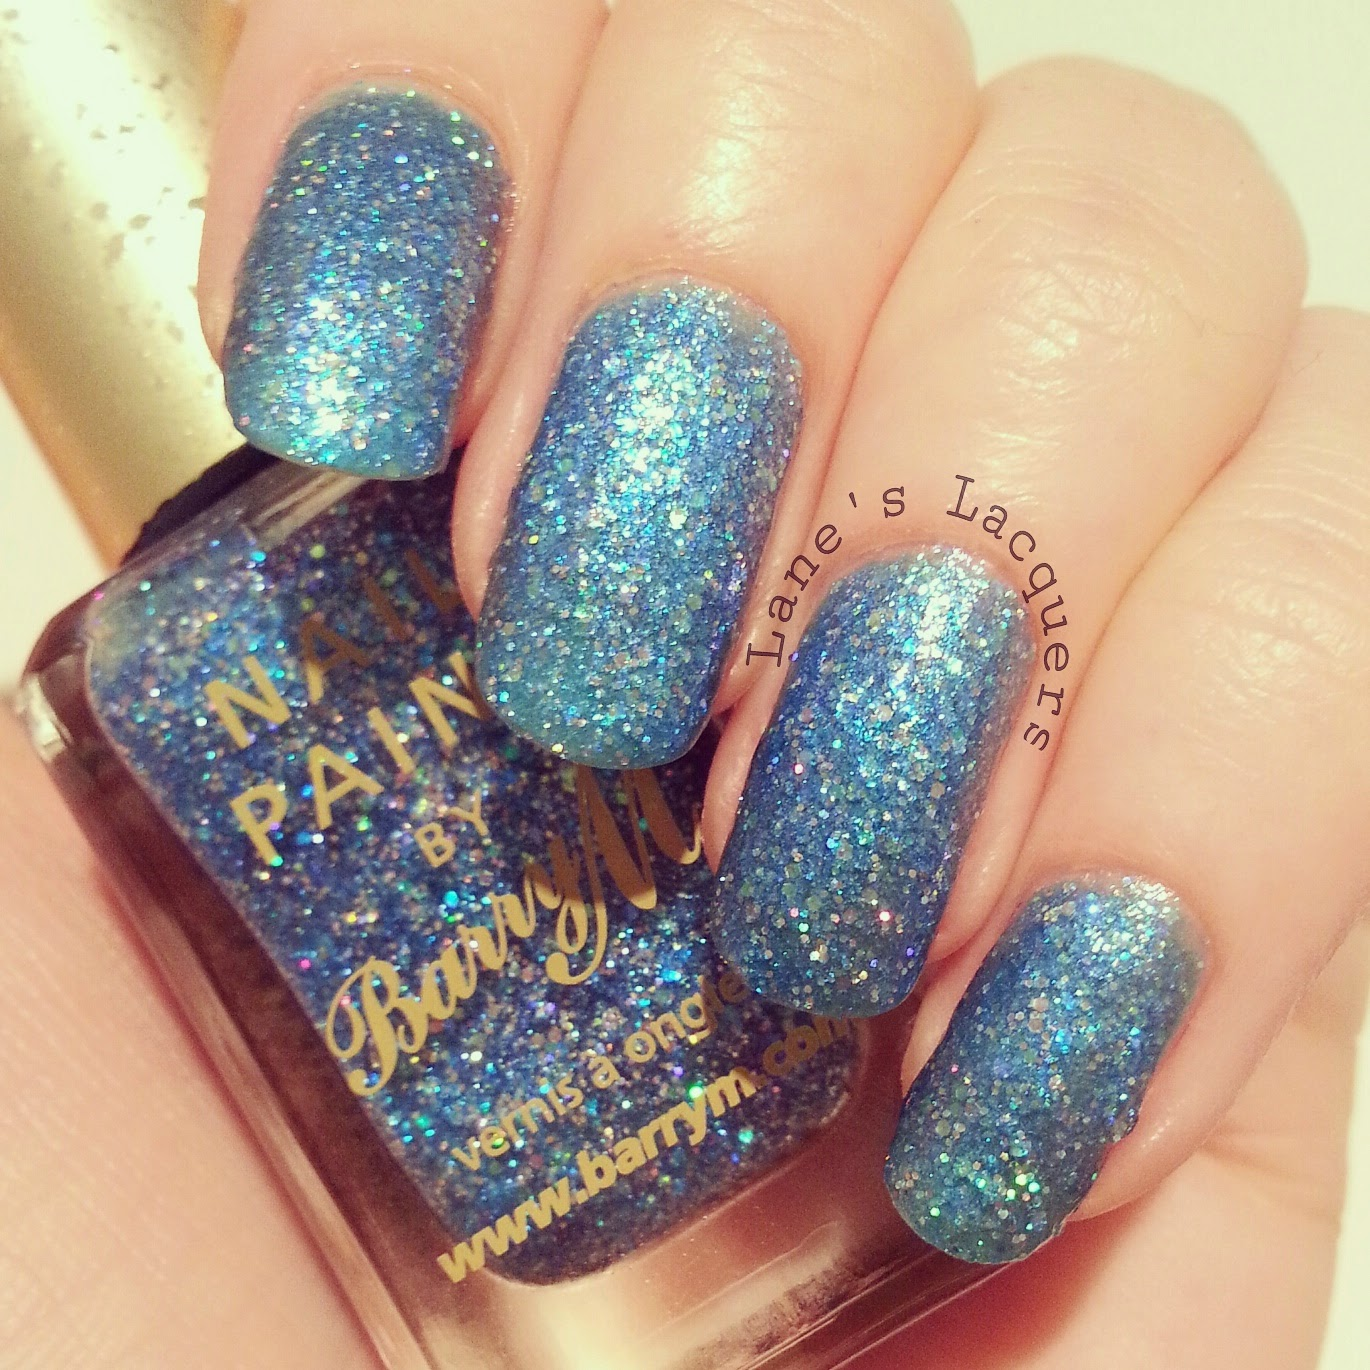 new-barry-m-glitterati-vip-swatch-manicure (2)